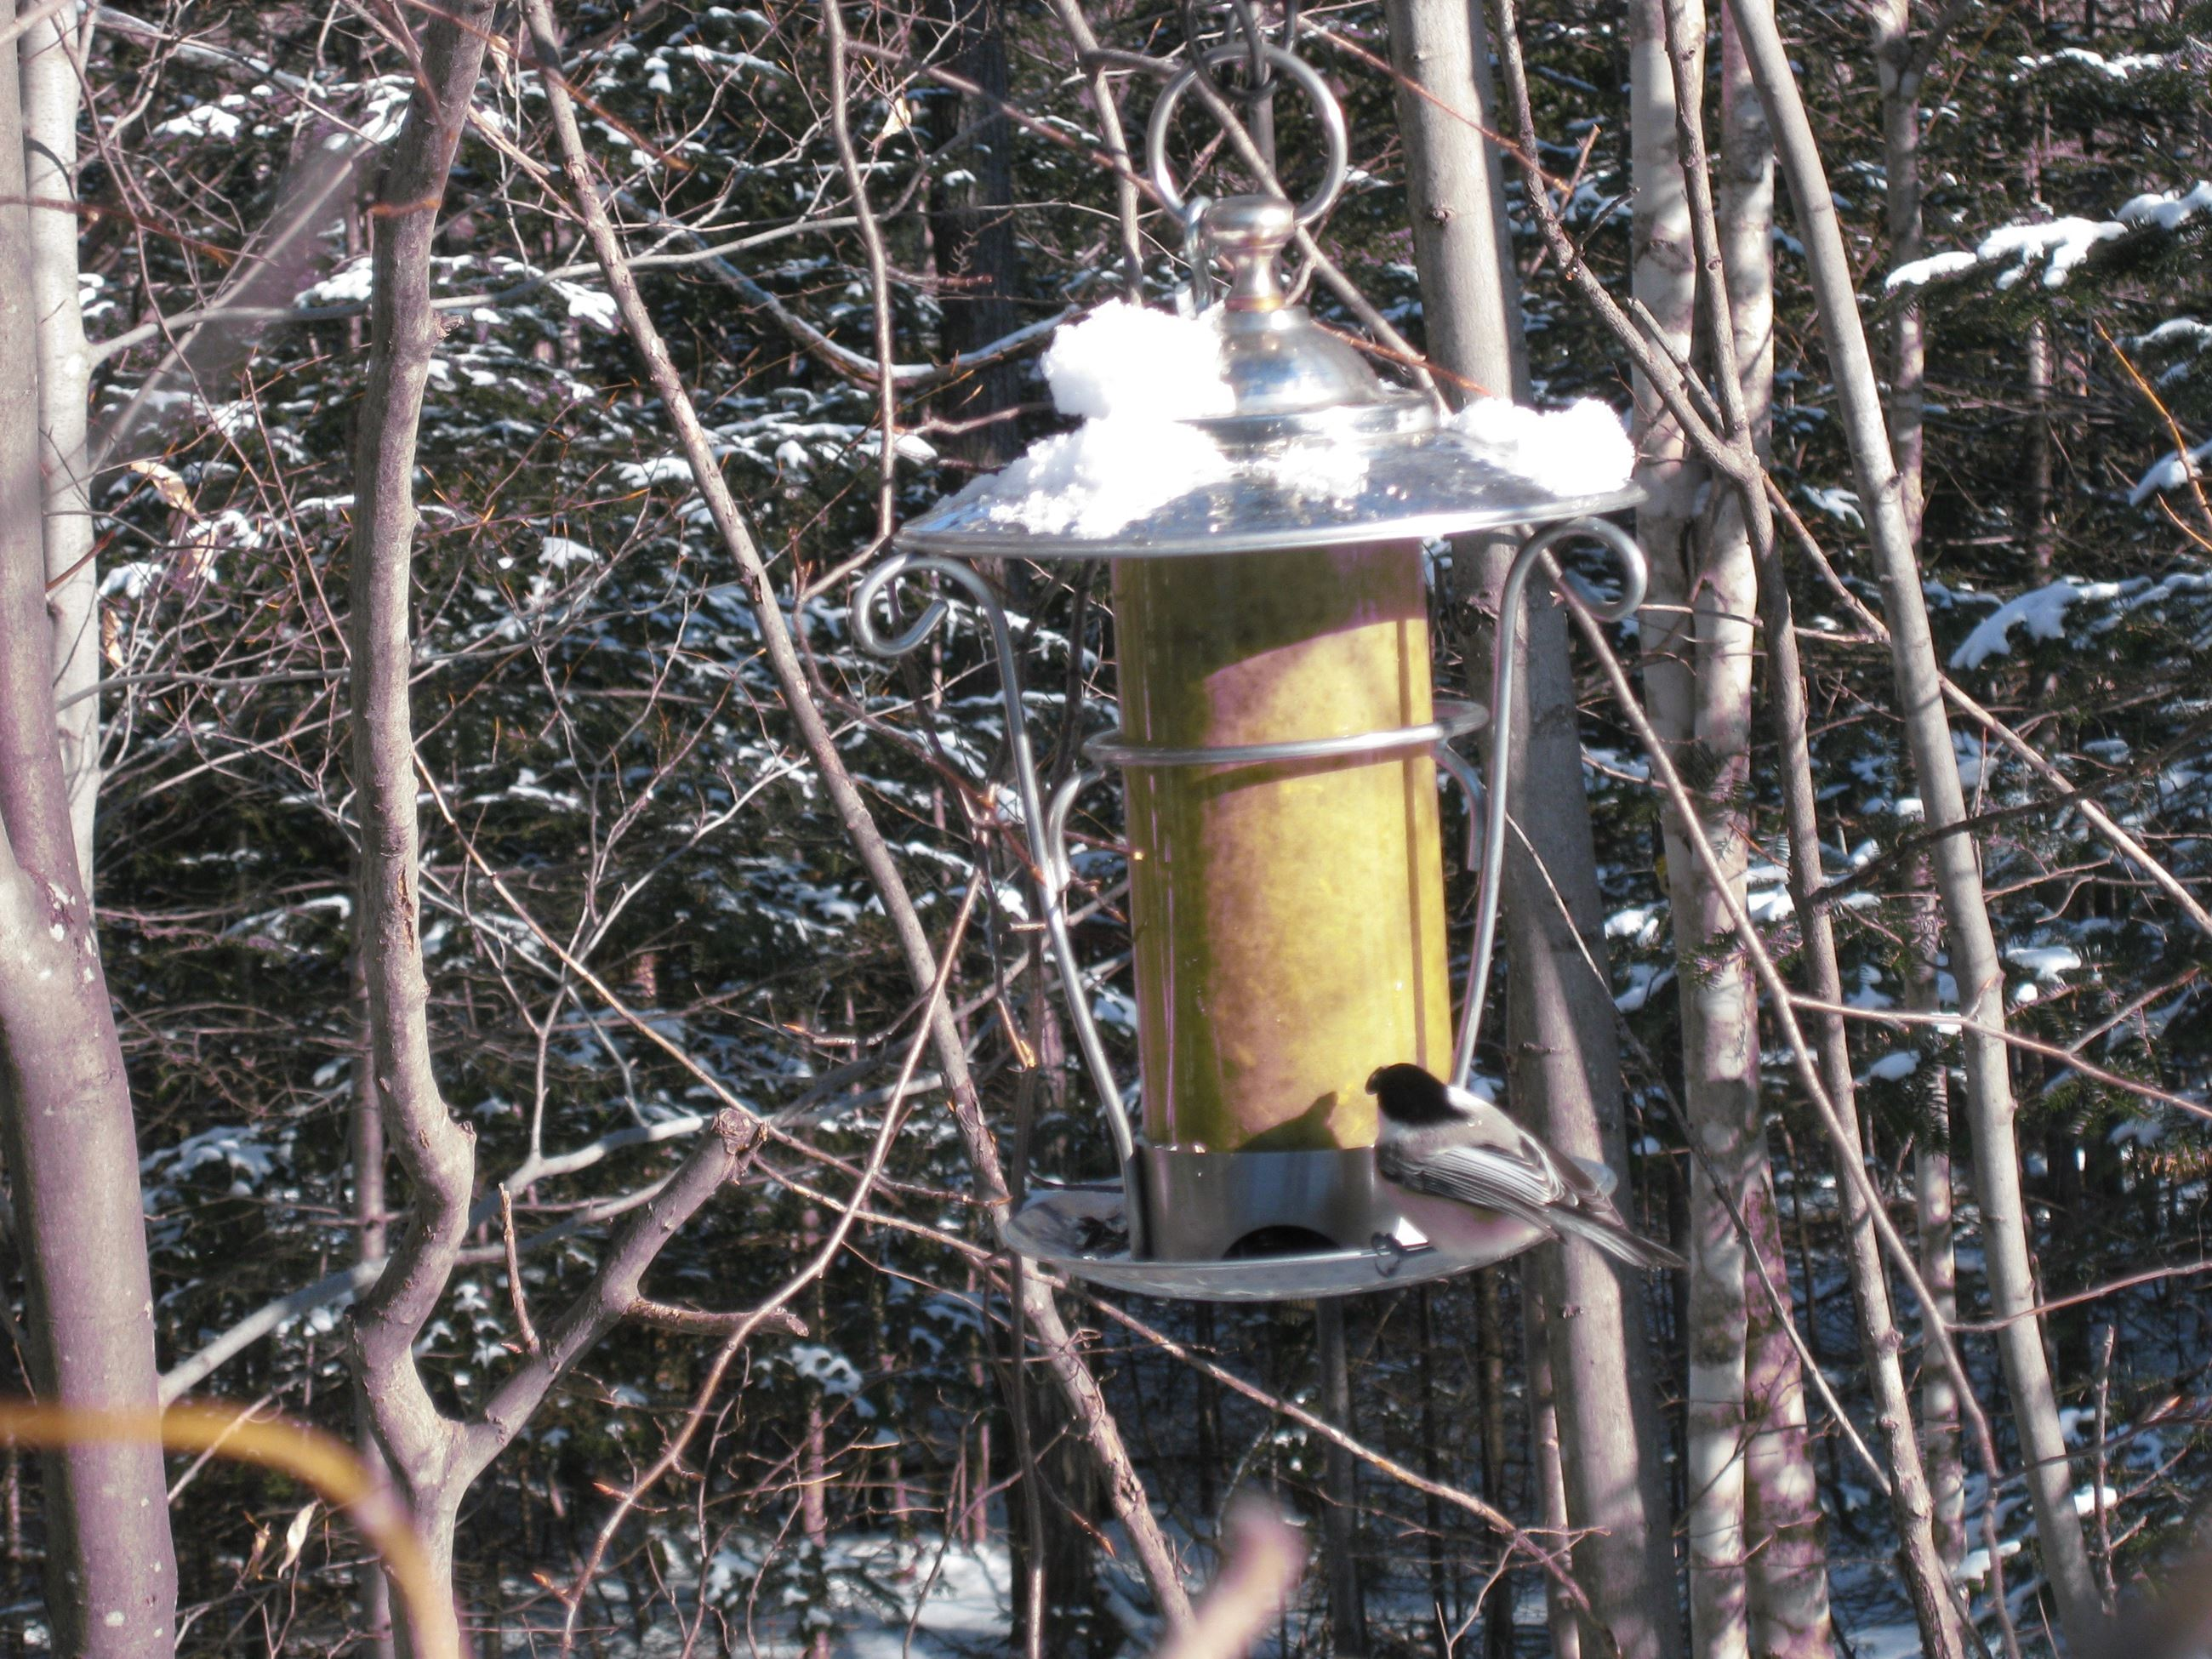 Black-capped Chickadee on bird feeder